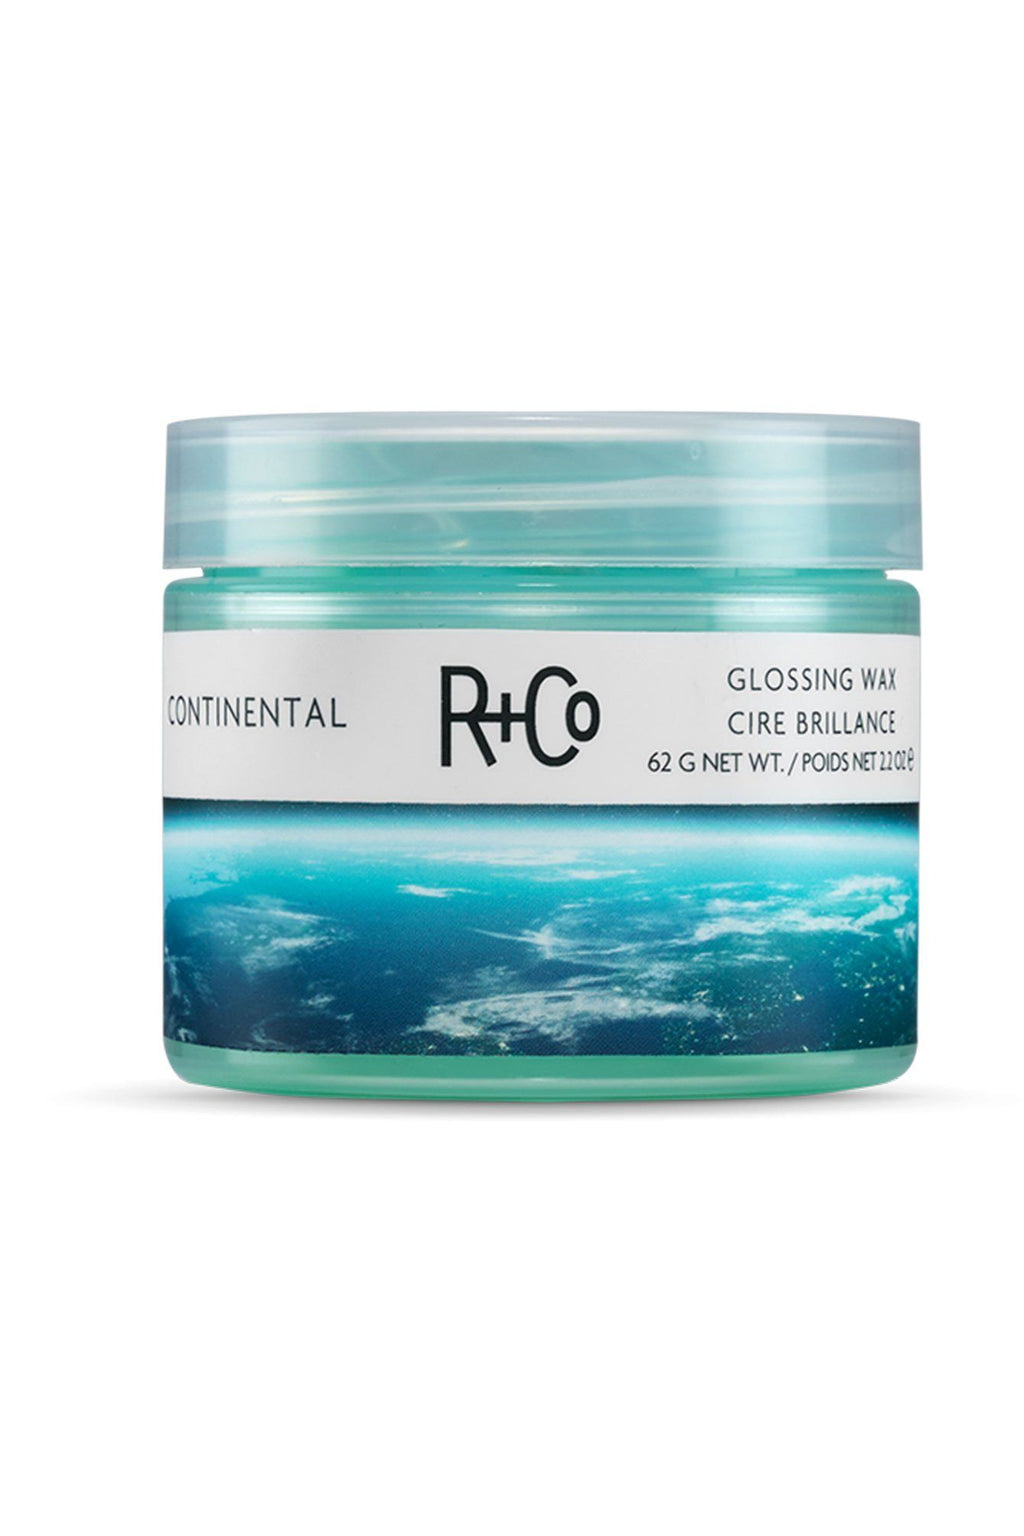 R+Co | Continental Glossing Wax